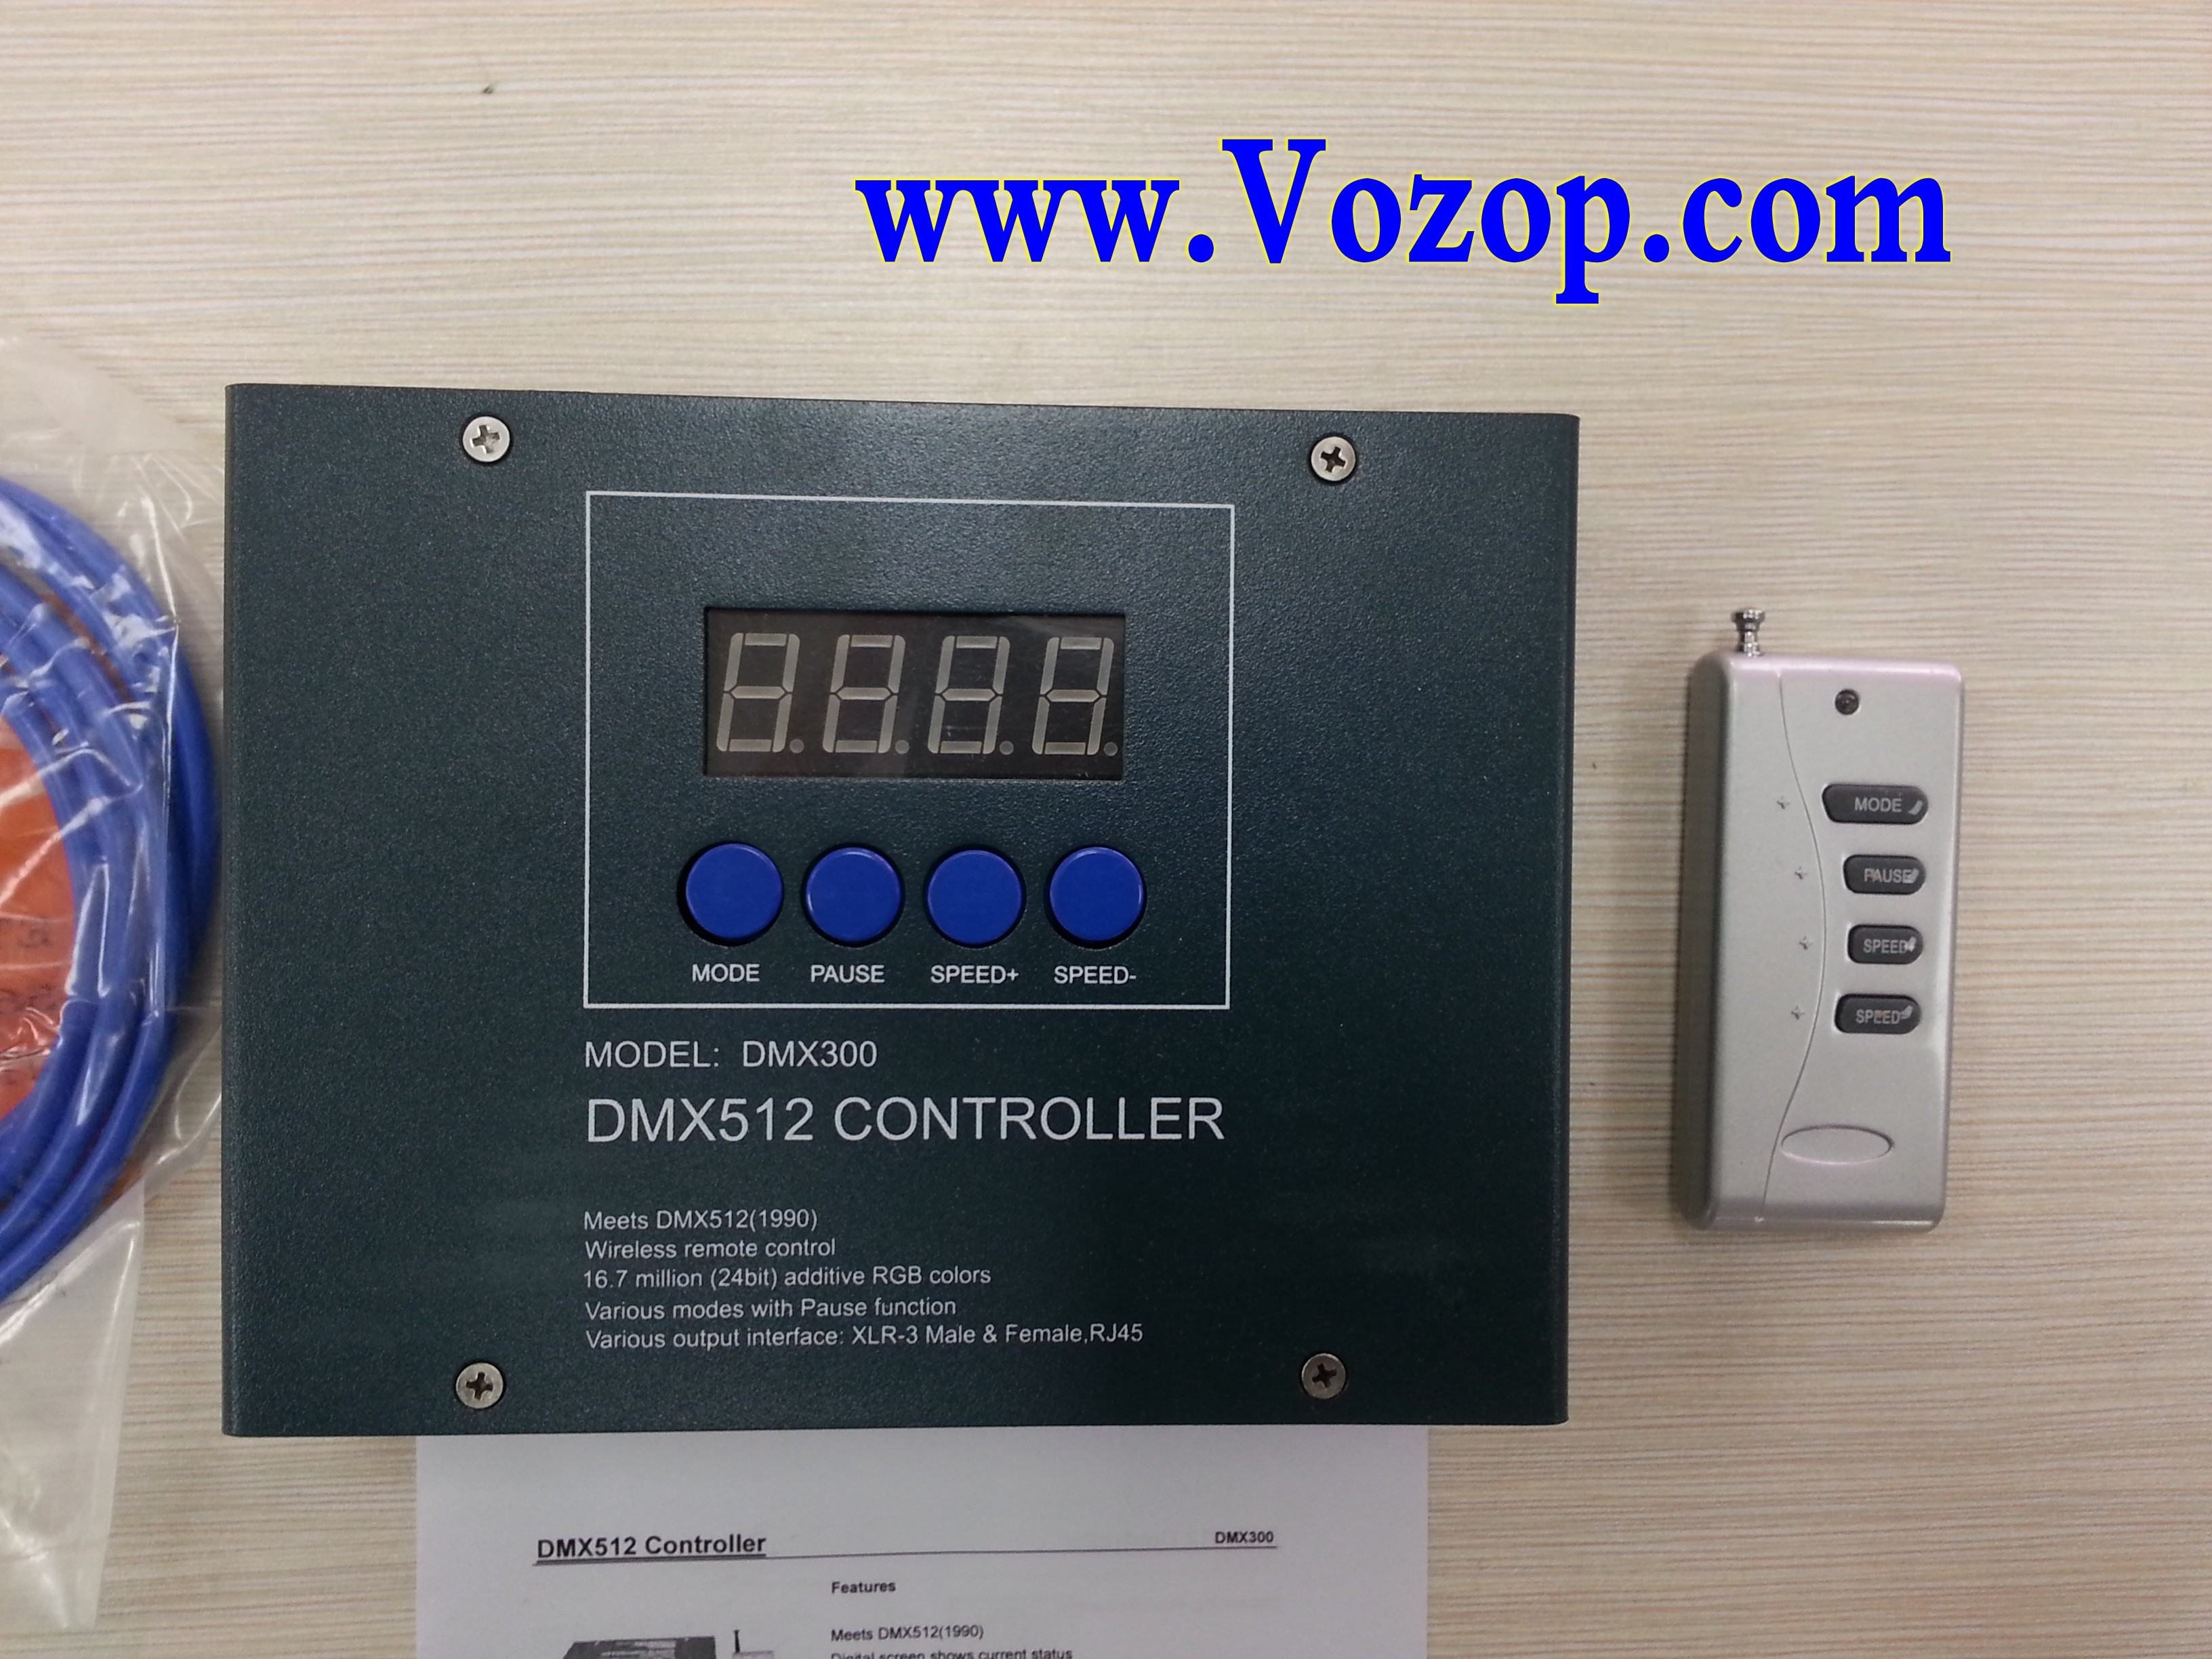 DMX300_DMX_LED_Controller_MASTER_Controllers